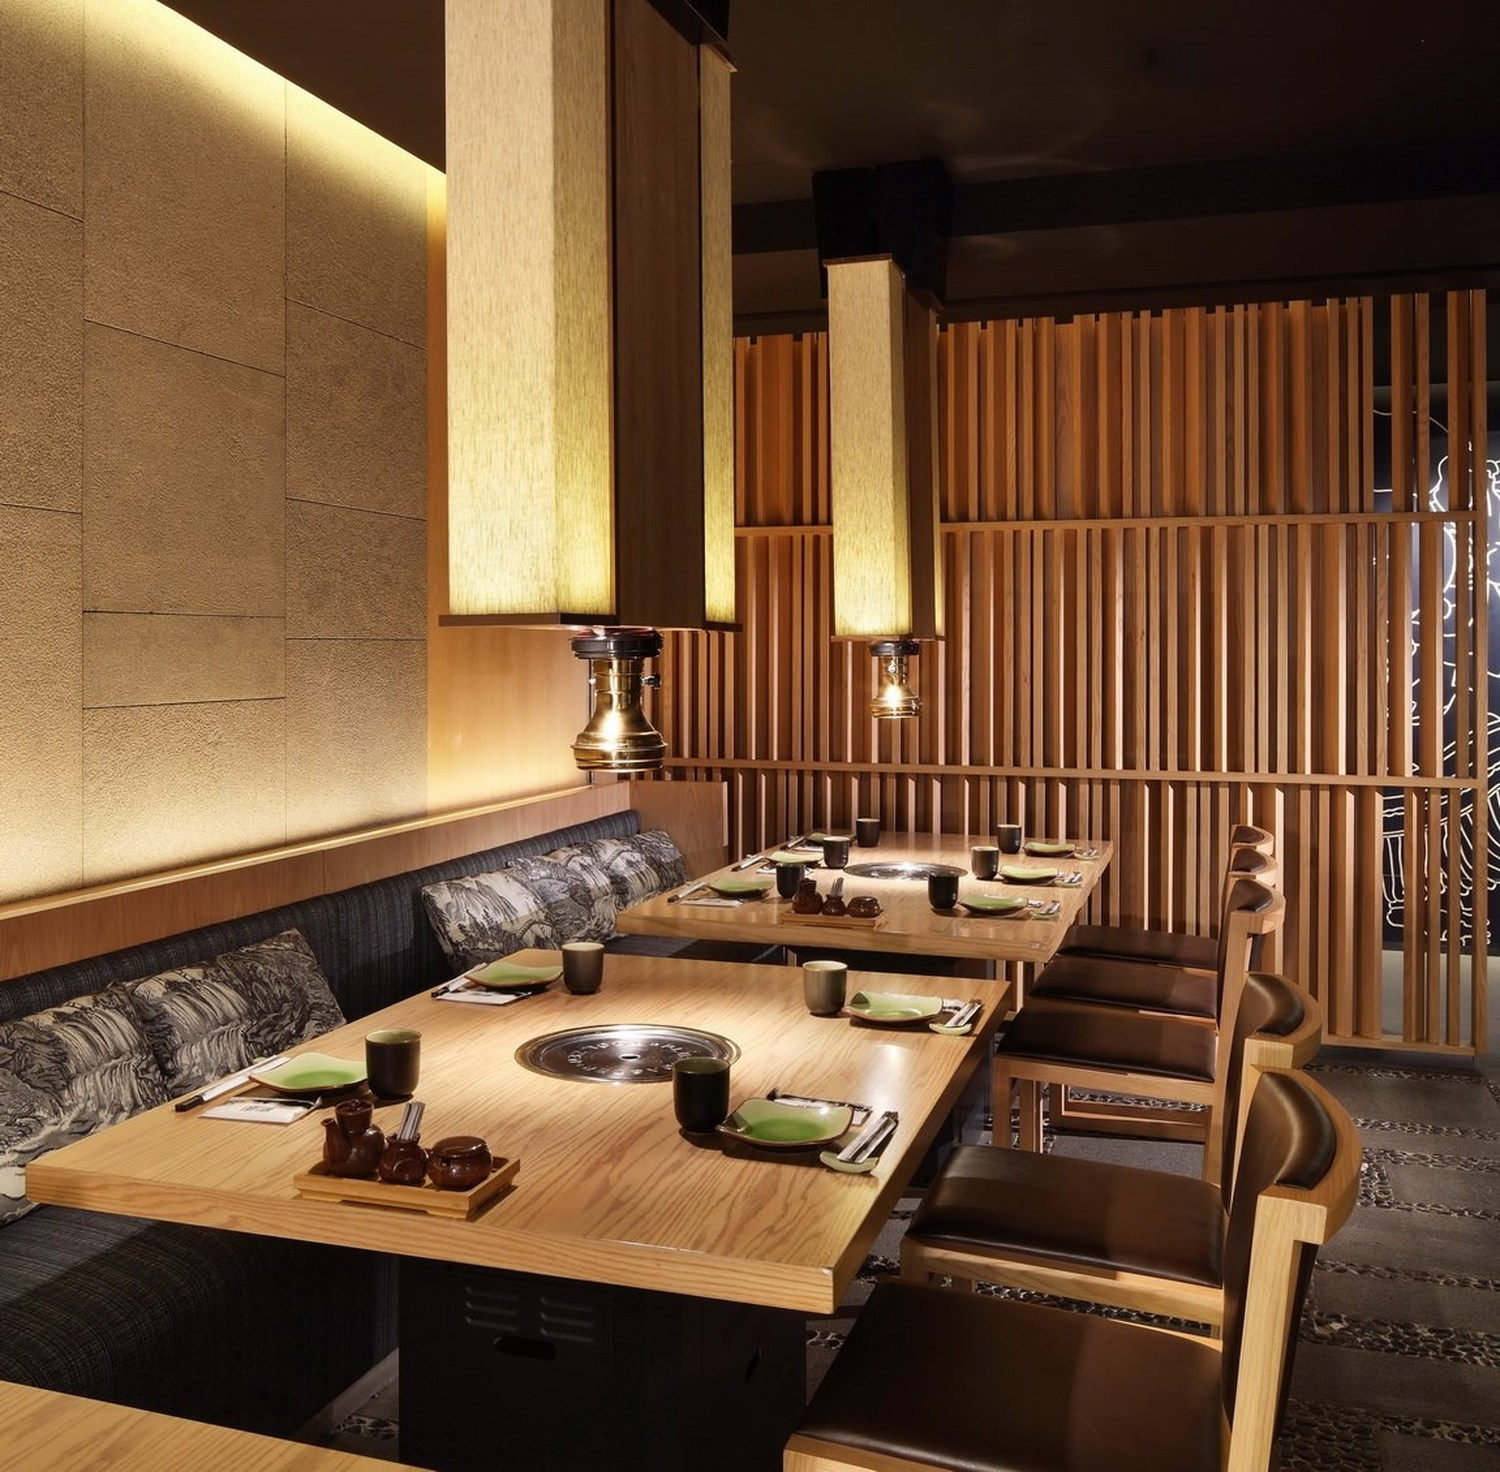 Matsumoto restaurant by golucci international design - Cafe interior design ...